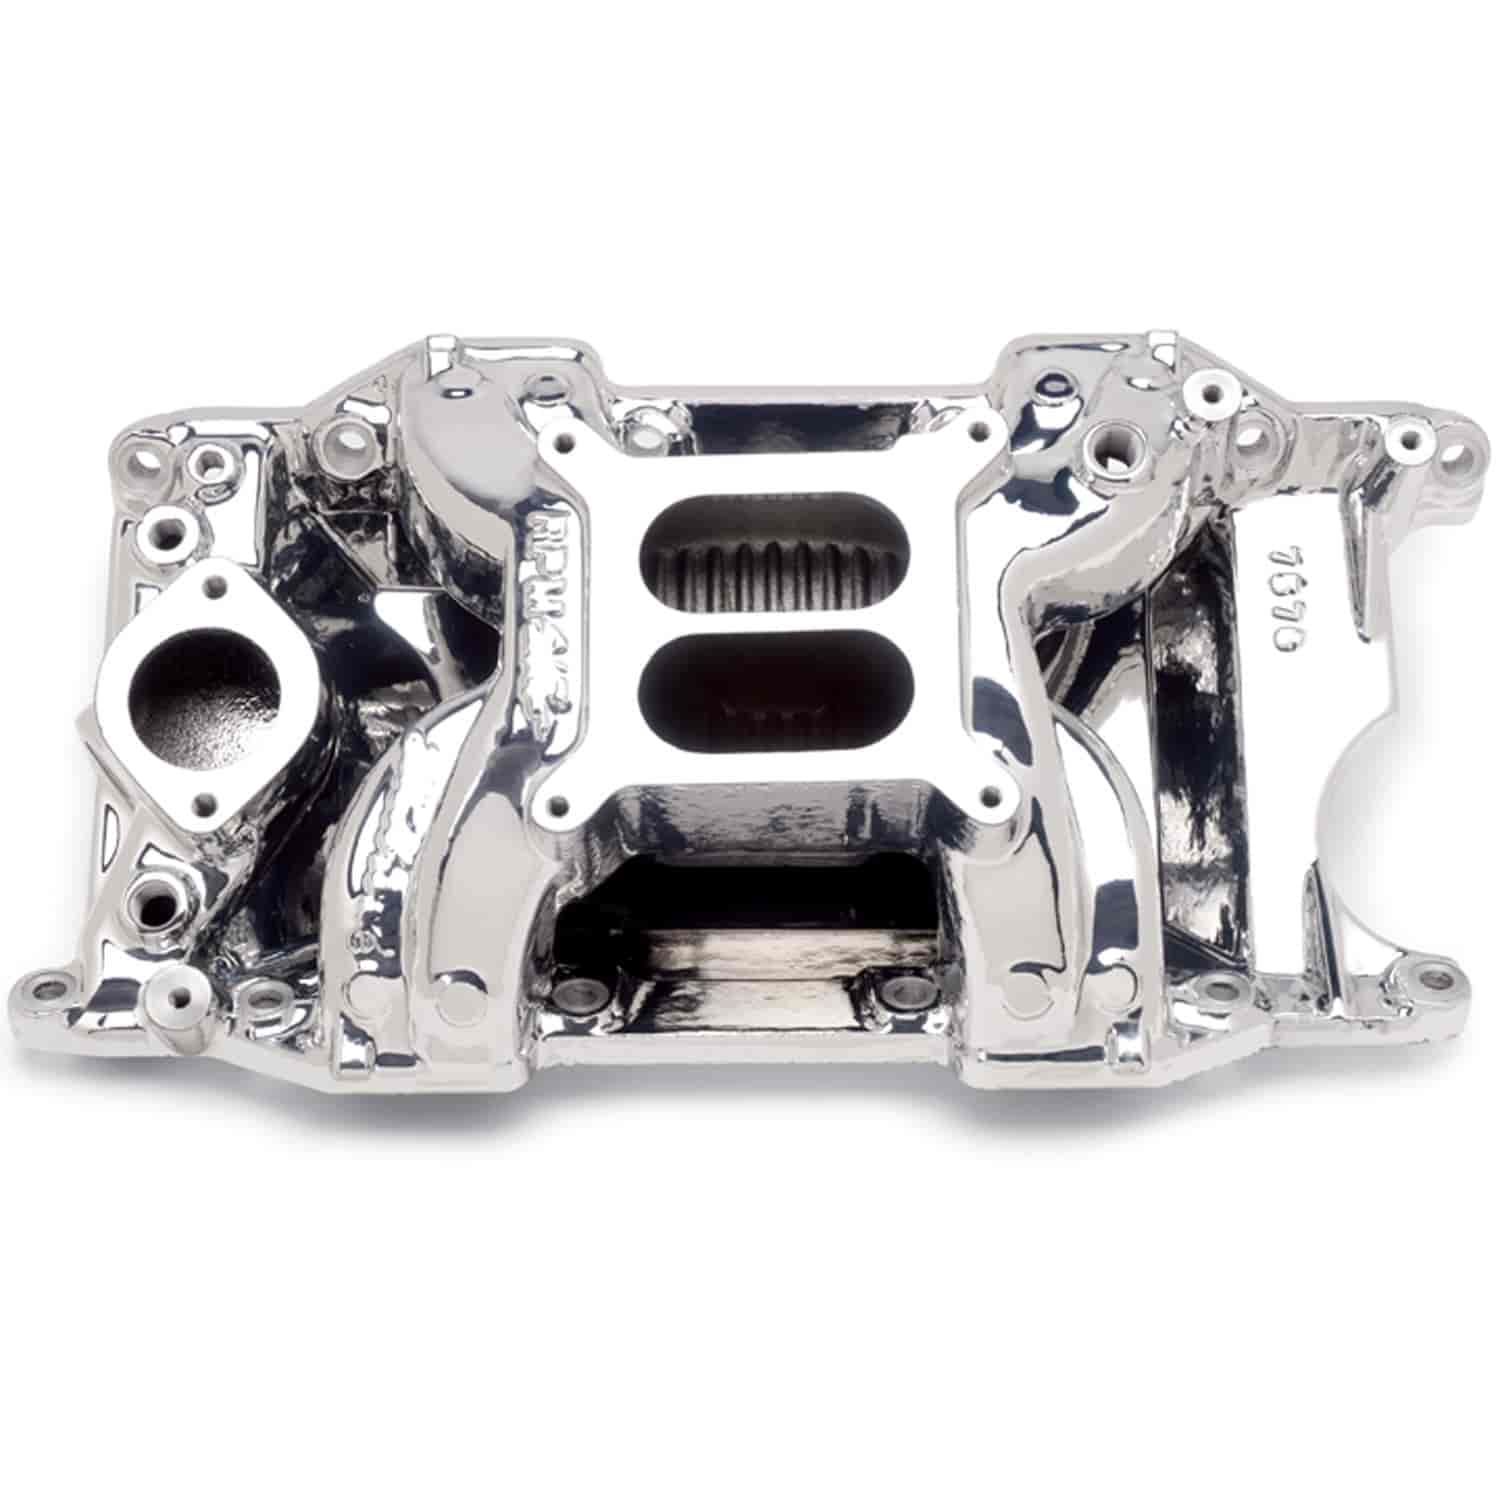 Edelbrock 75764: RPM Air-Gap Intake Manifold SB-Chrysler